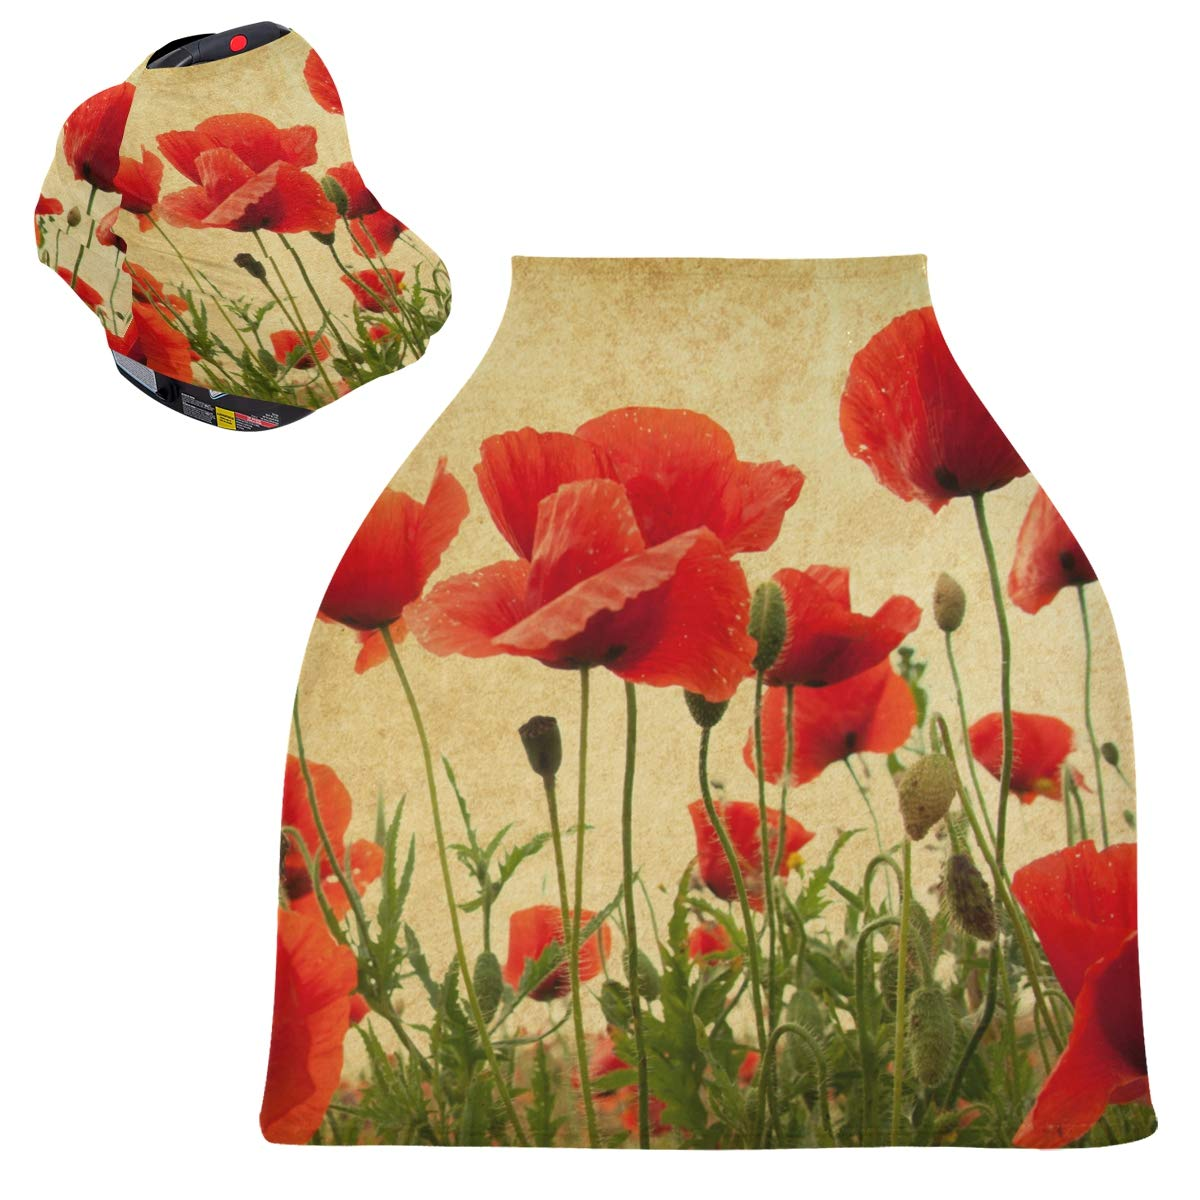 Stretchy Baby Car Seat Canopy - Vintage Poppies Flowers Infant Stroller Cover Multi Use Carseat Scarf Nursing Cover for Baby Boy and Girl